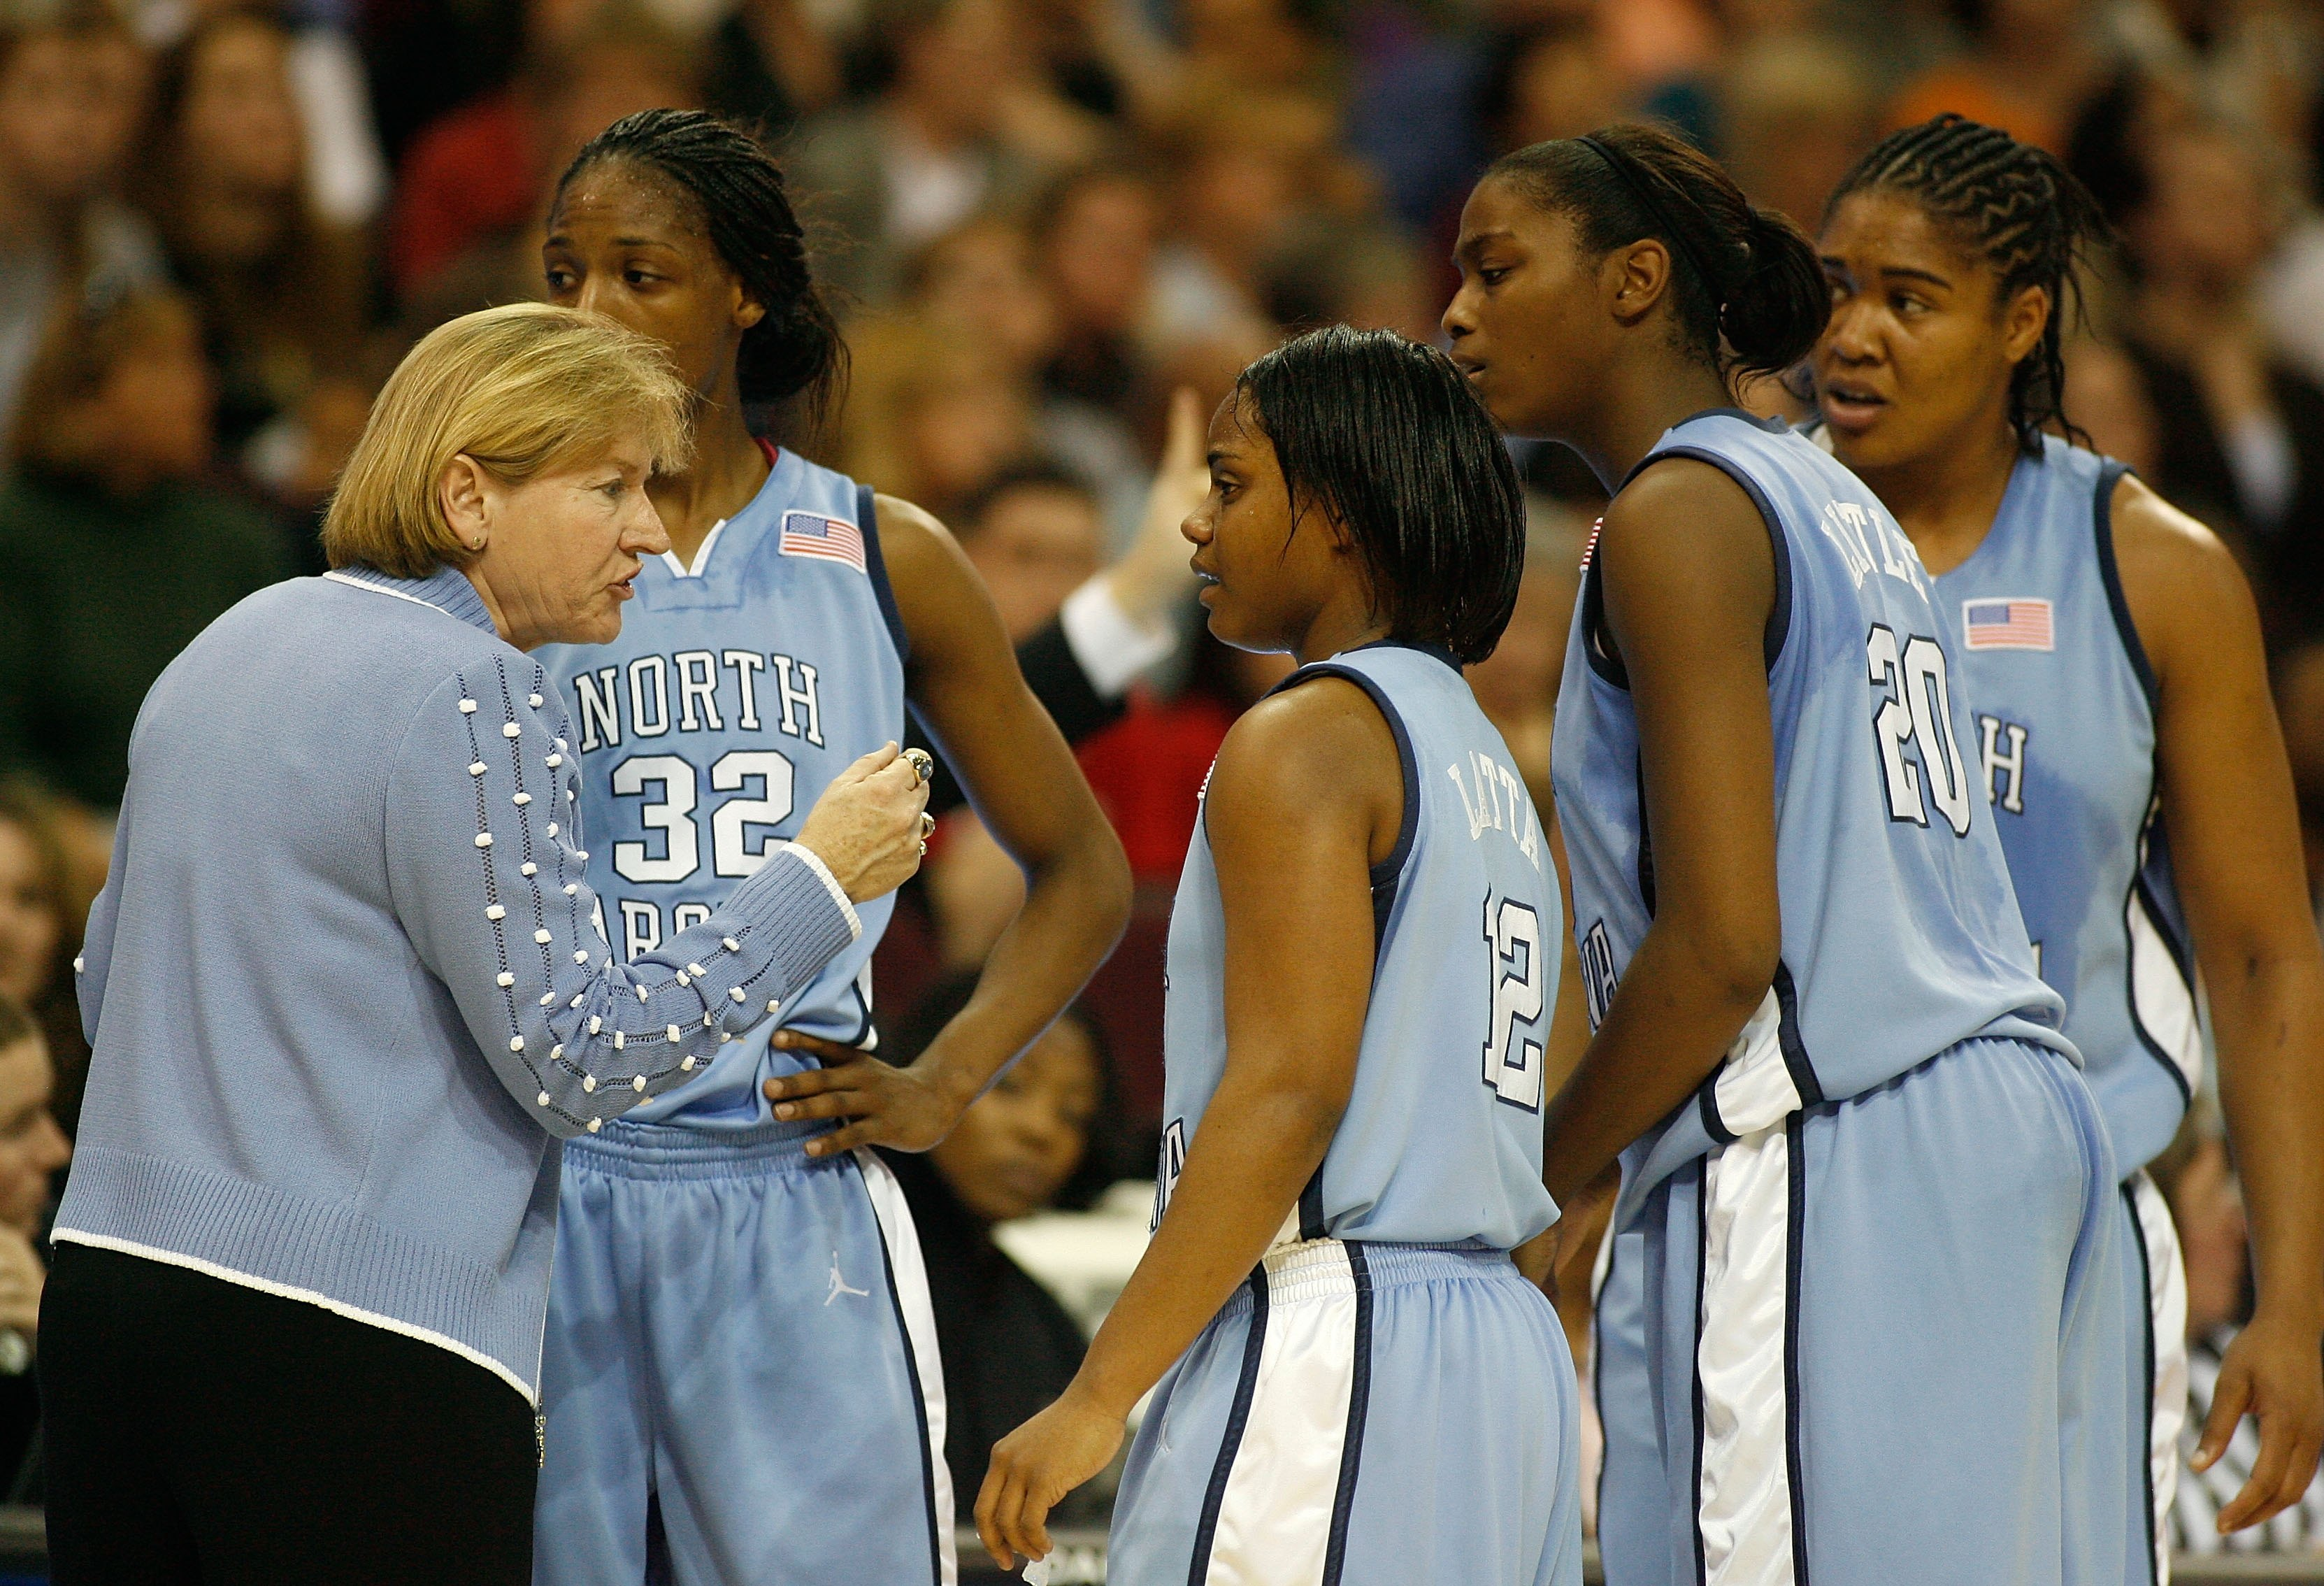 CLEVELAND - APRIL 01: Head coach Sylvia Hatchell of the North Carolina Tar Heels talks with her players during a timeout against the Tennessee Lady Volunteers during their National Semifinal game of the 2007 NCAA Women's Final Four at the Quicken Loans Arena on April 1, 2007 in Cleveland, Ohio. Getty Images/ Gregory Shamus